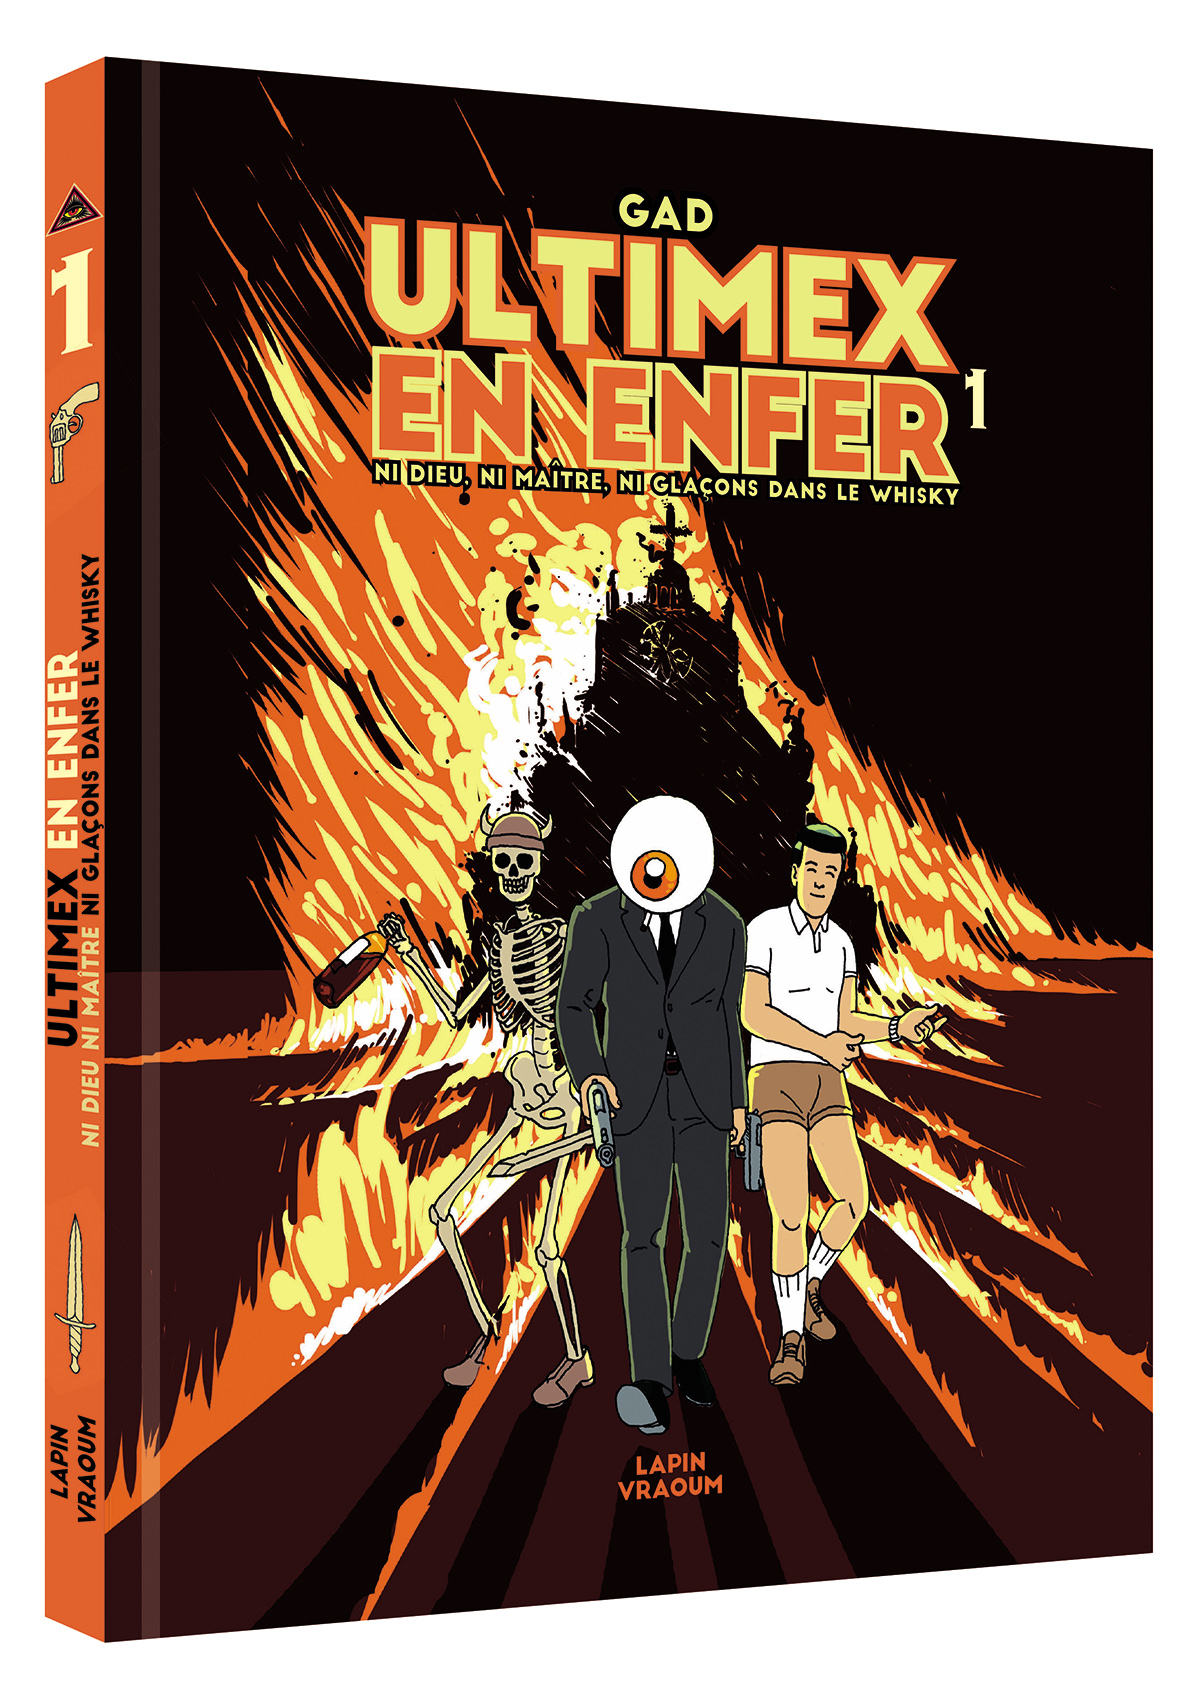 ULTIMEX en enfer Tome 1